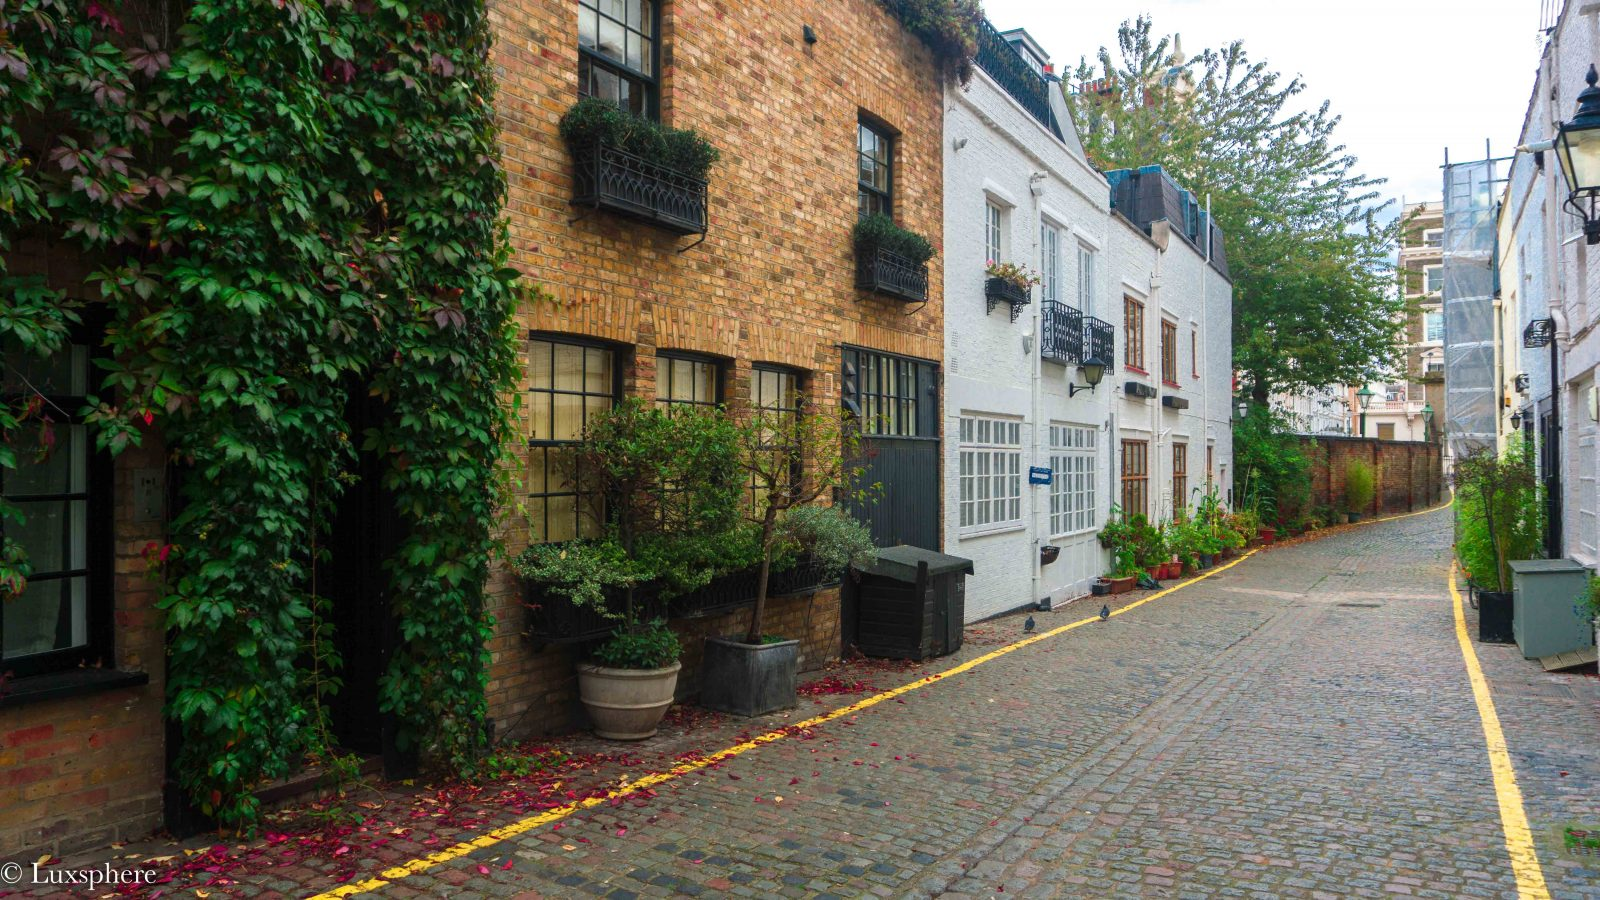 Photogenic streets in London Kynance mews